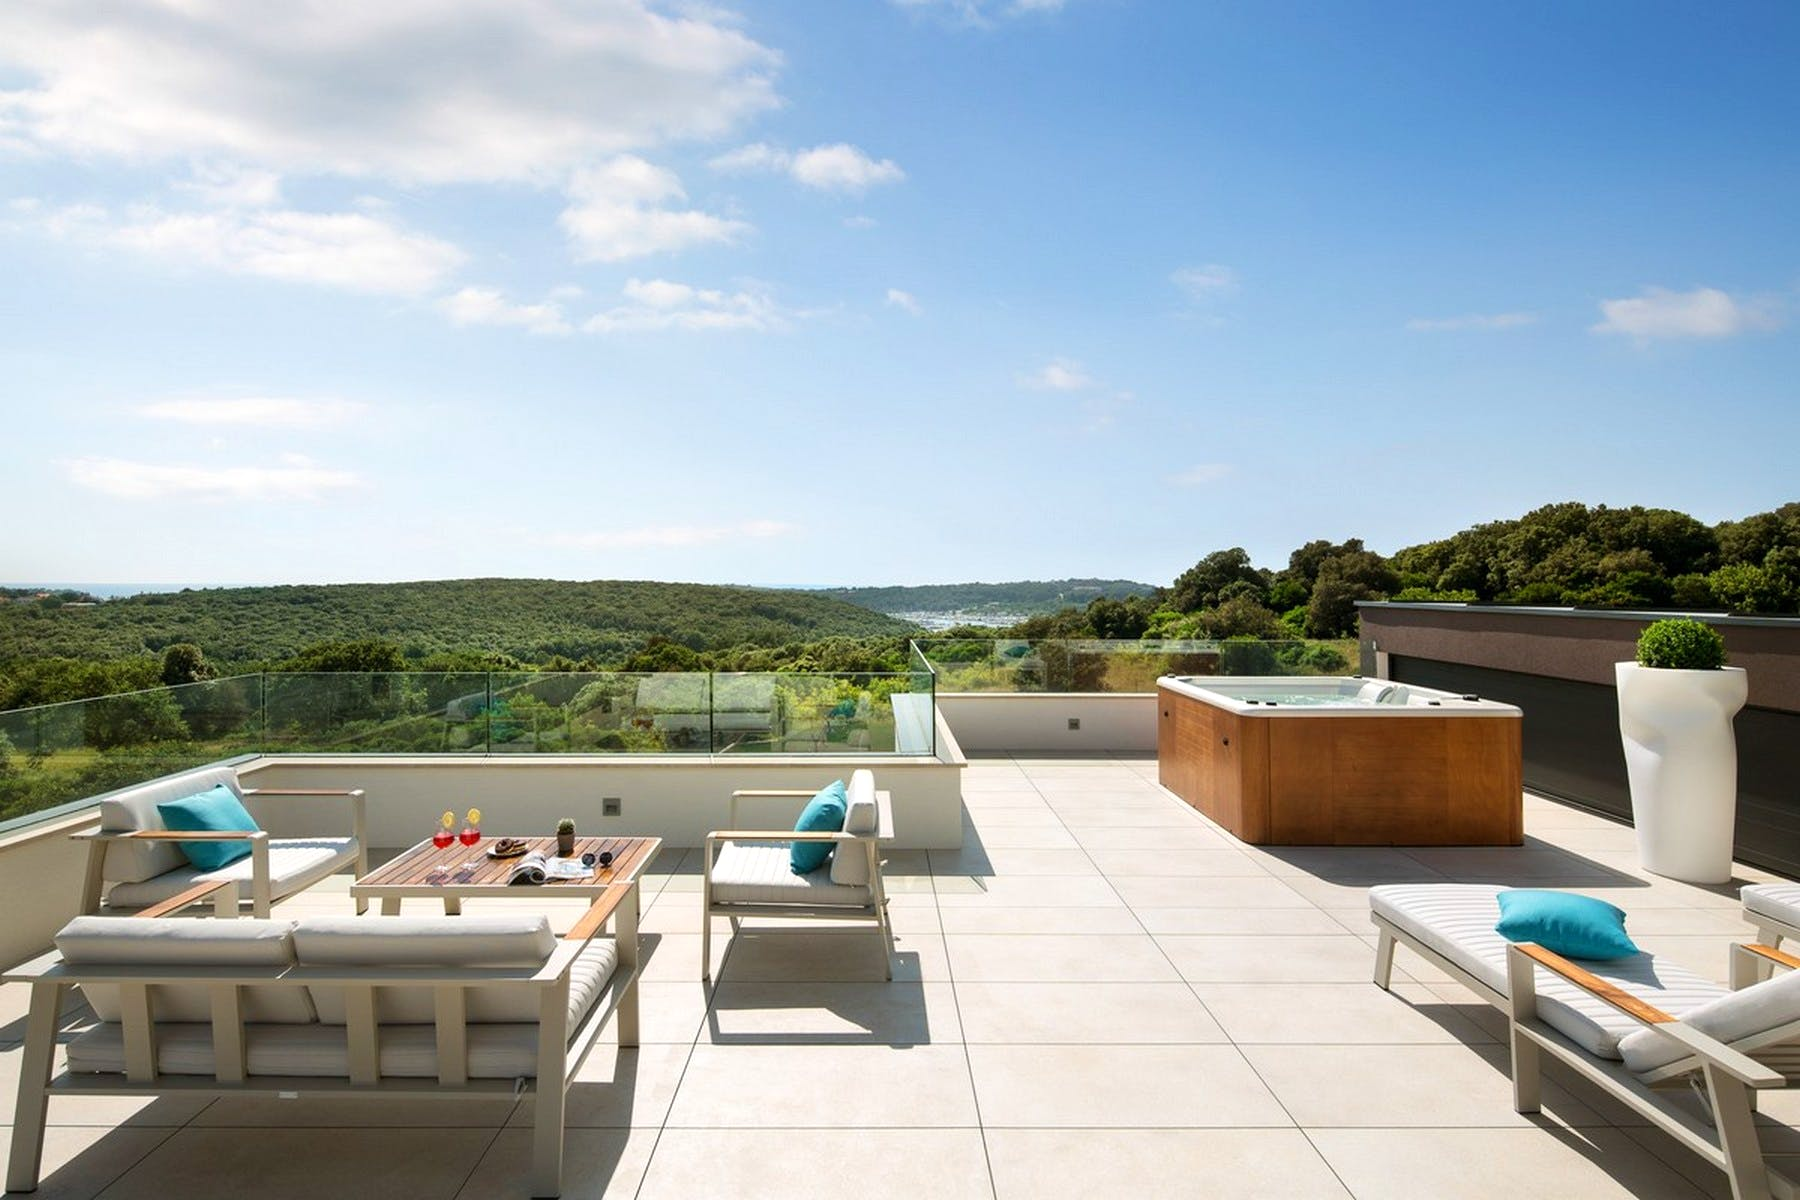 Sunny terrace with jacuzzi